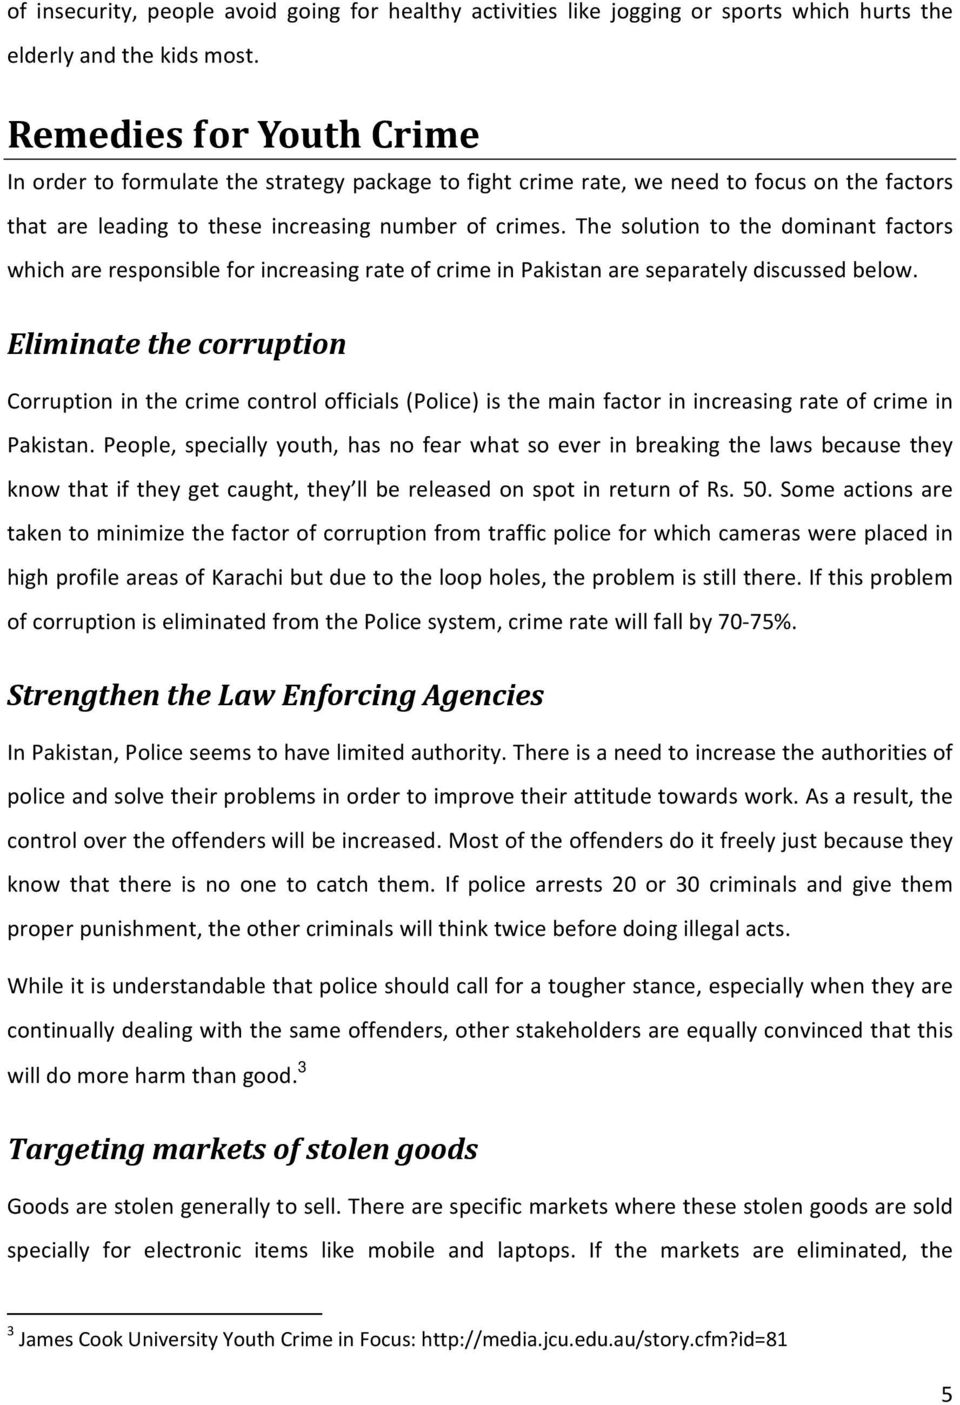 essay on street crimes in  essay on street crimes in